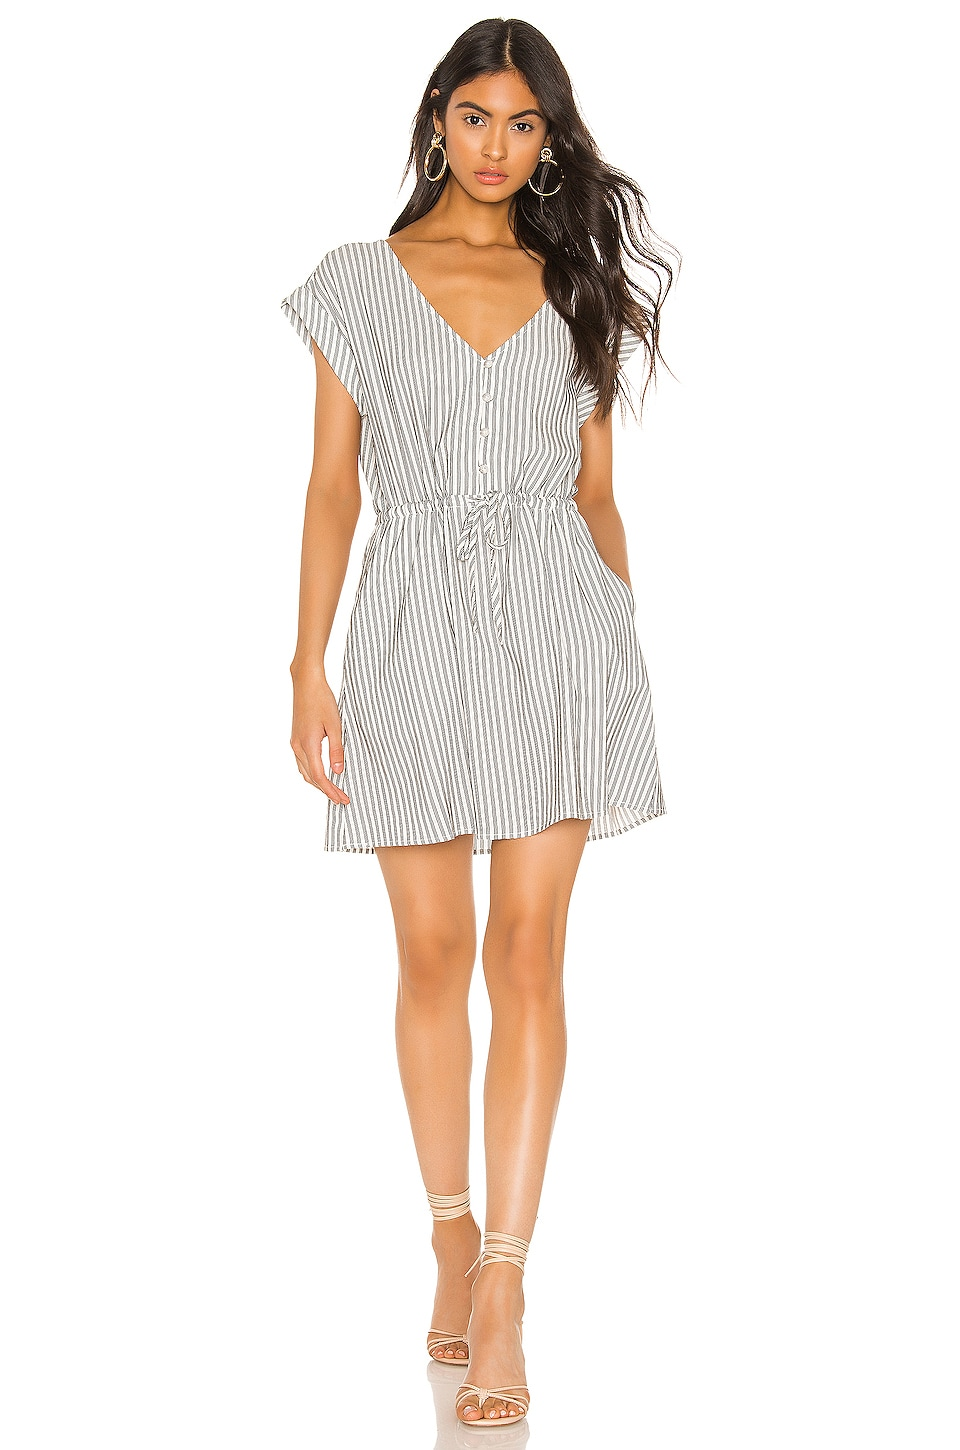 Sanctuary Sundrenched Soft Shirt Dress in Timeless Stripe